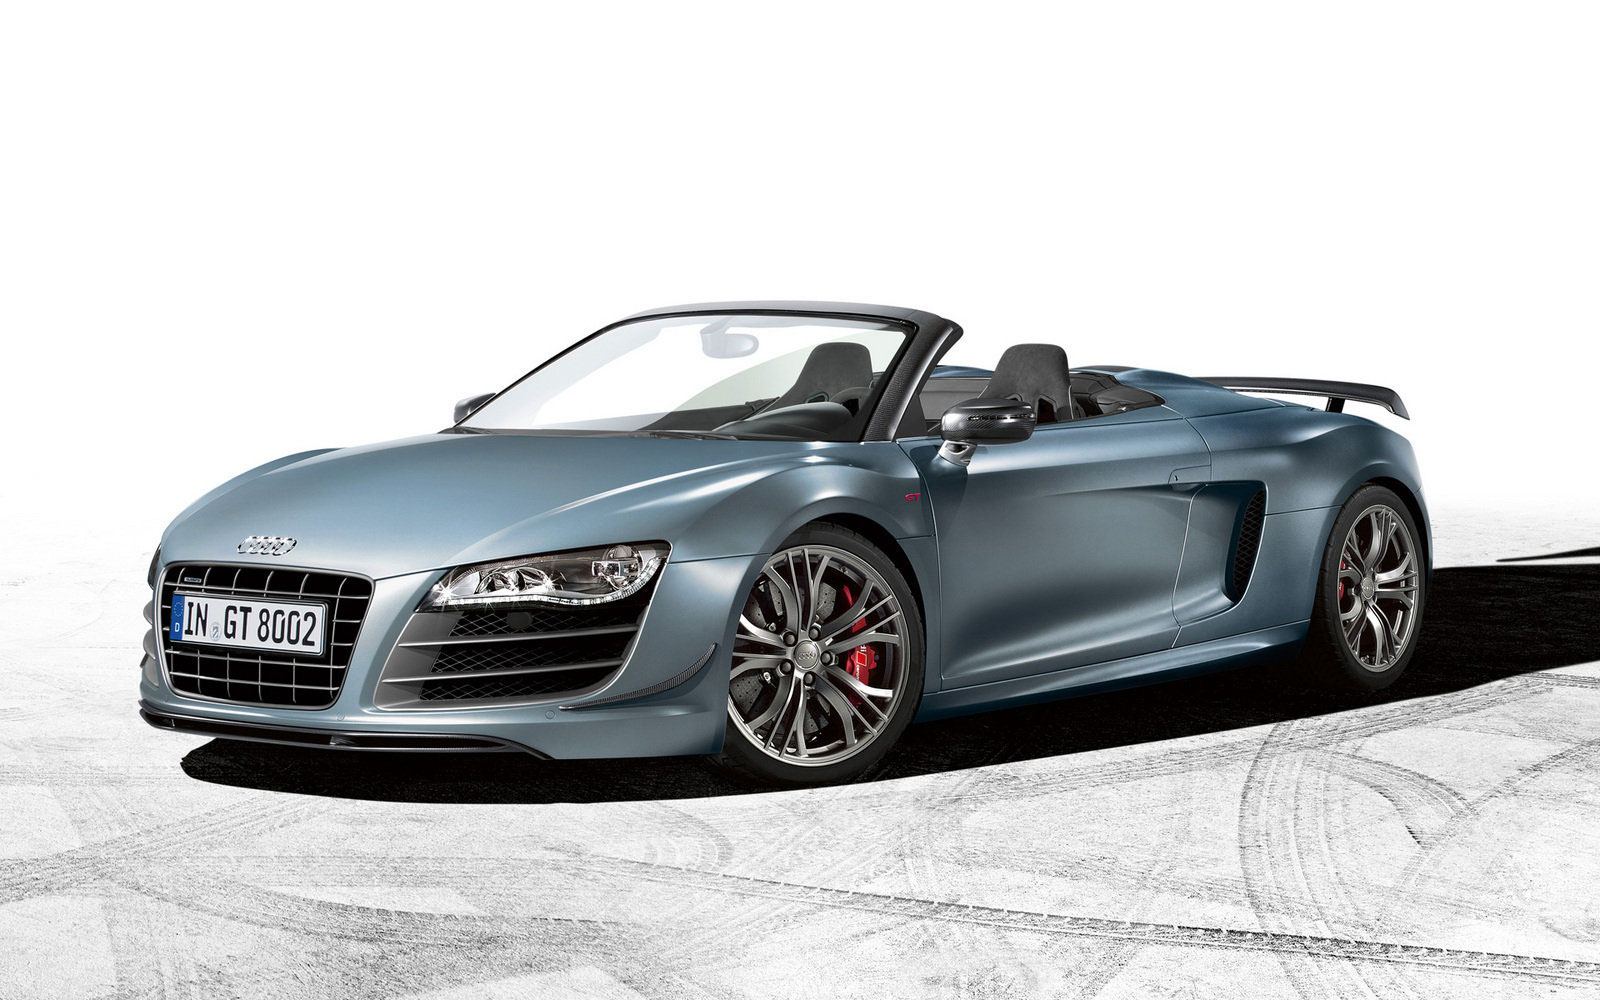 2012 audi r8 gt spyder officially announced extravaganzi. Black Bedroom Furniture Sets. Home Design Ideas